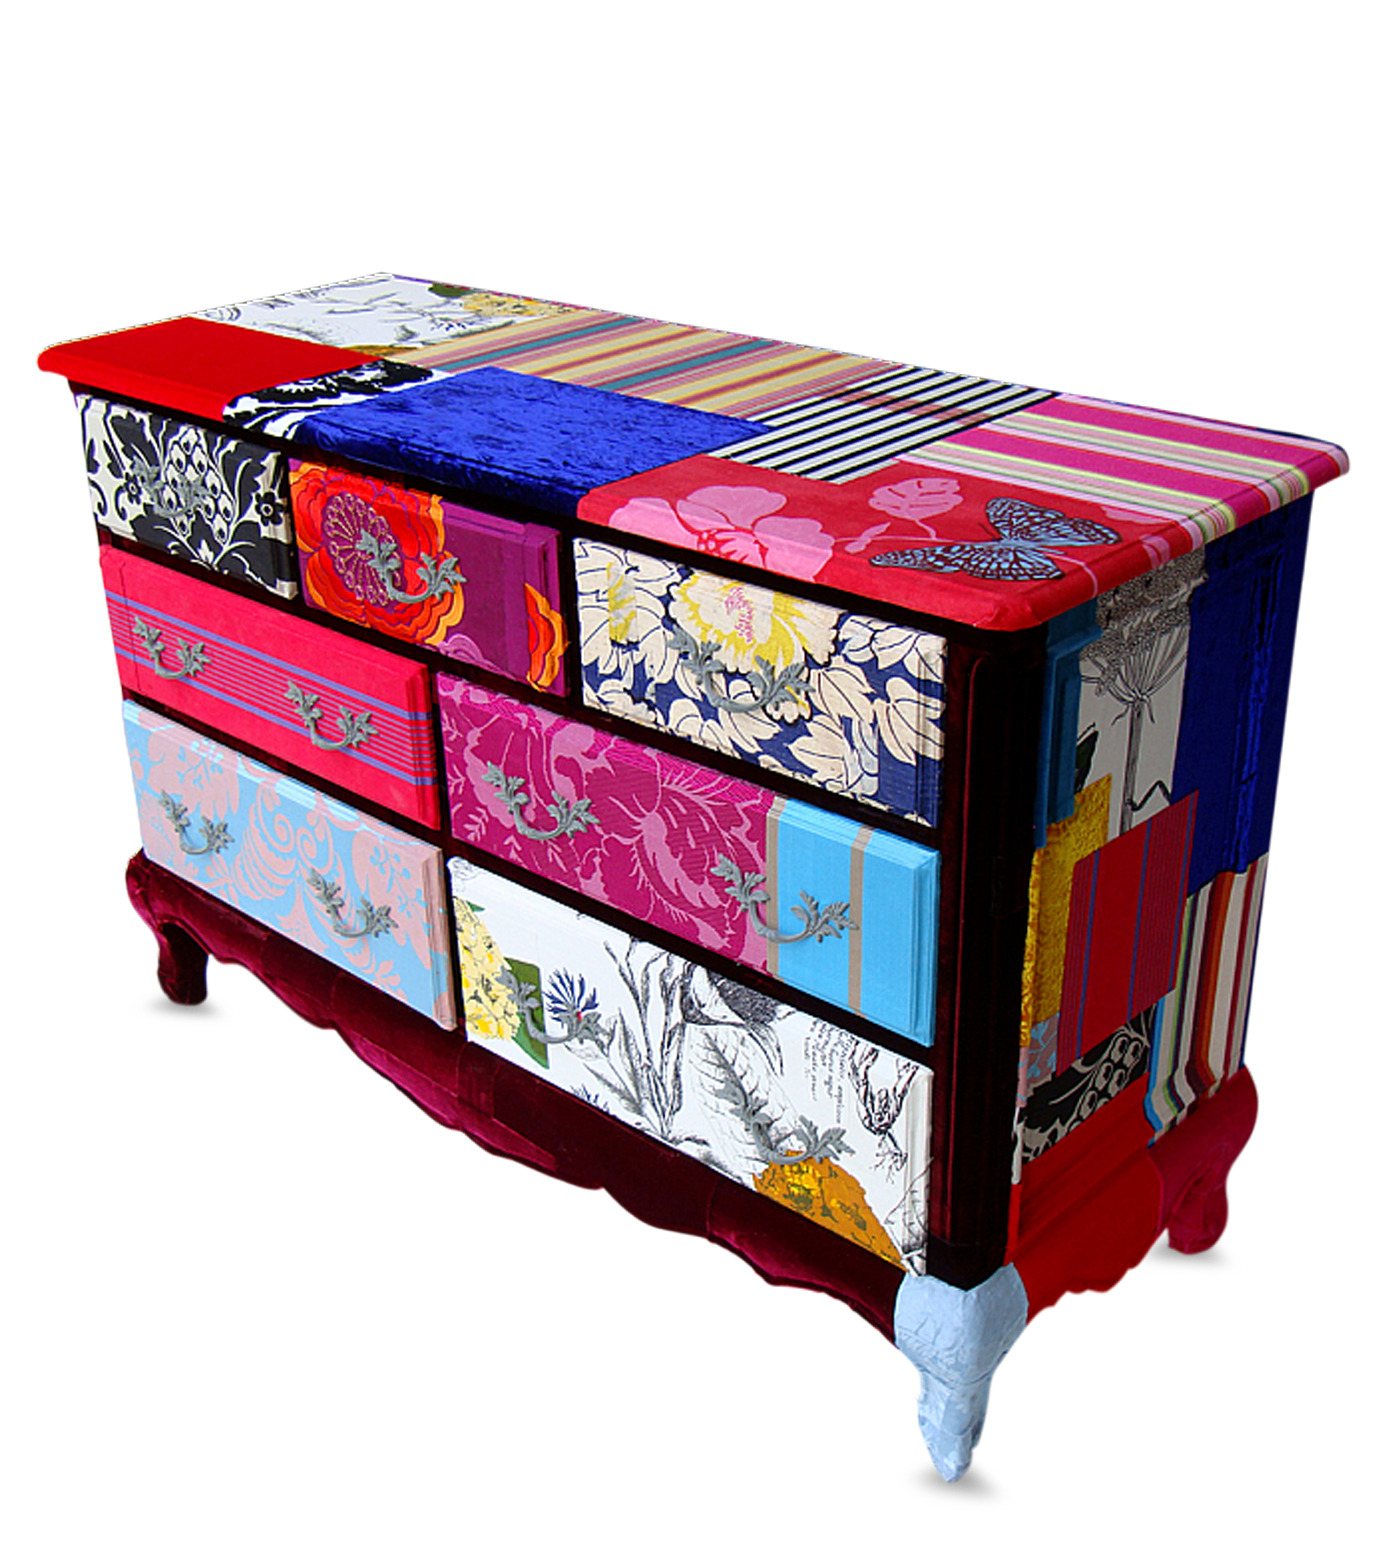 Squintlimited(スクイントリミテッド)の7 Drawer chest-NONE-2-0 拡大詳細画像1